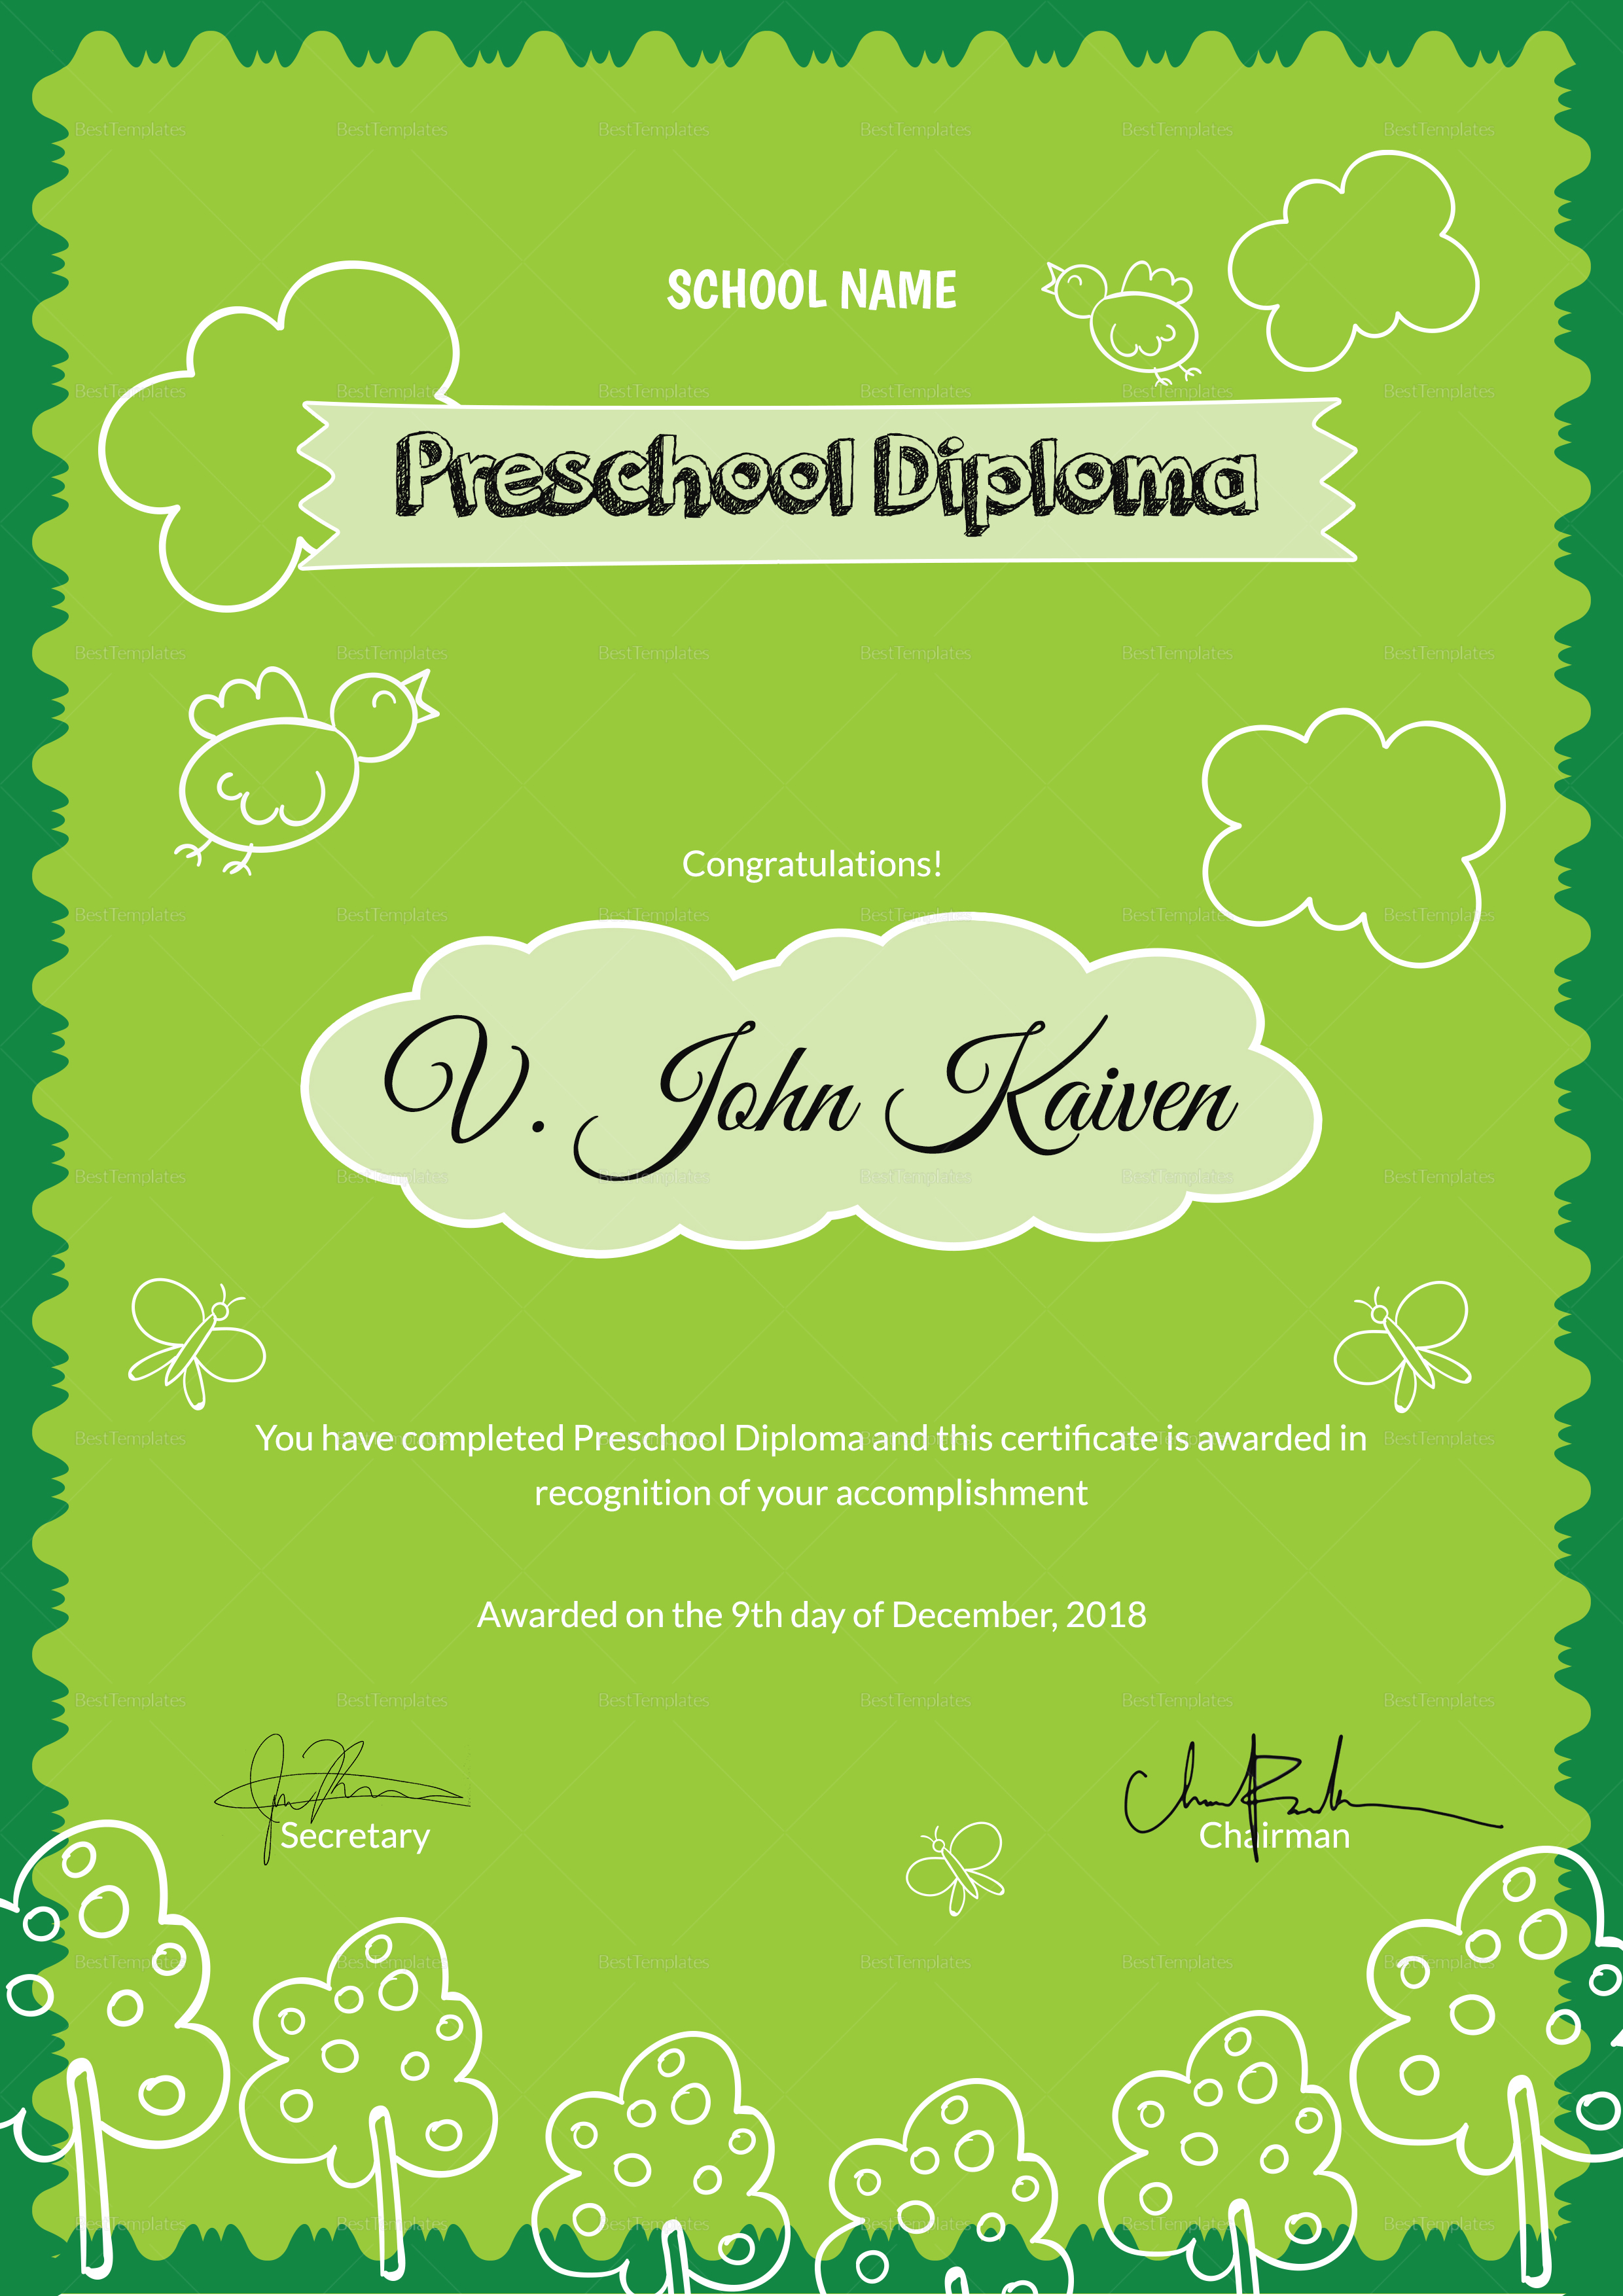 Preschool Award Certificate Design Template